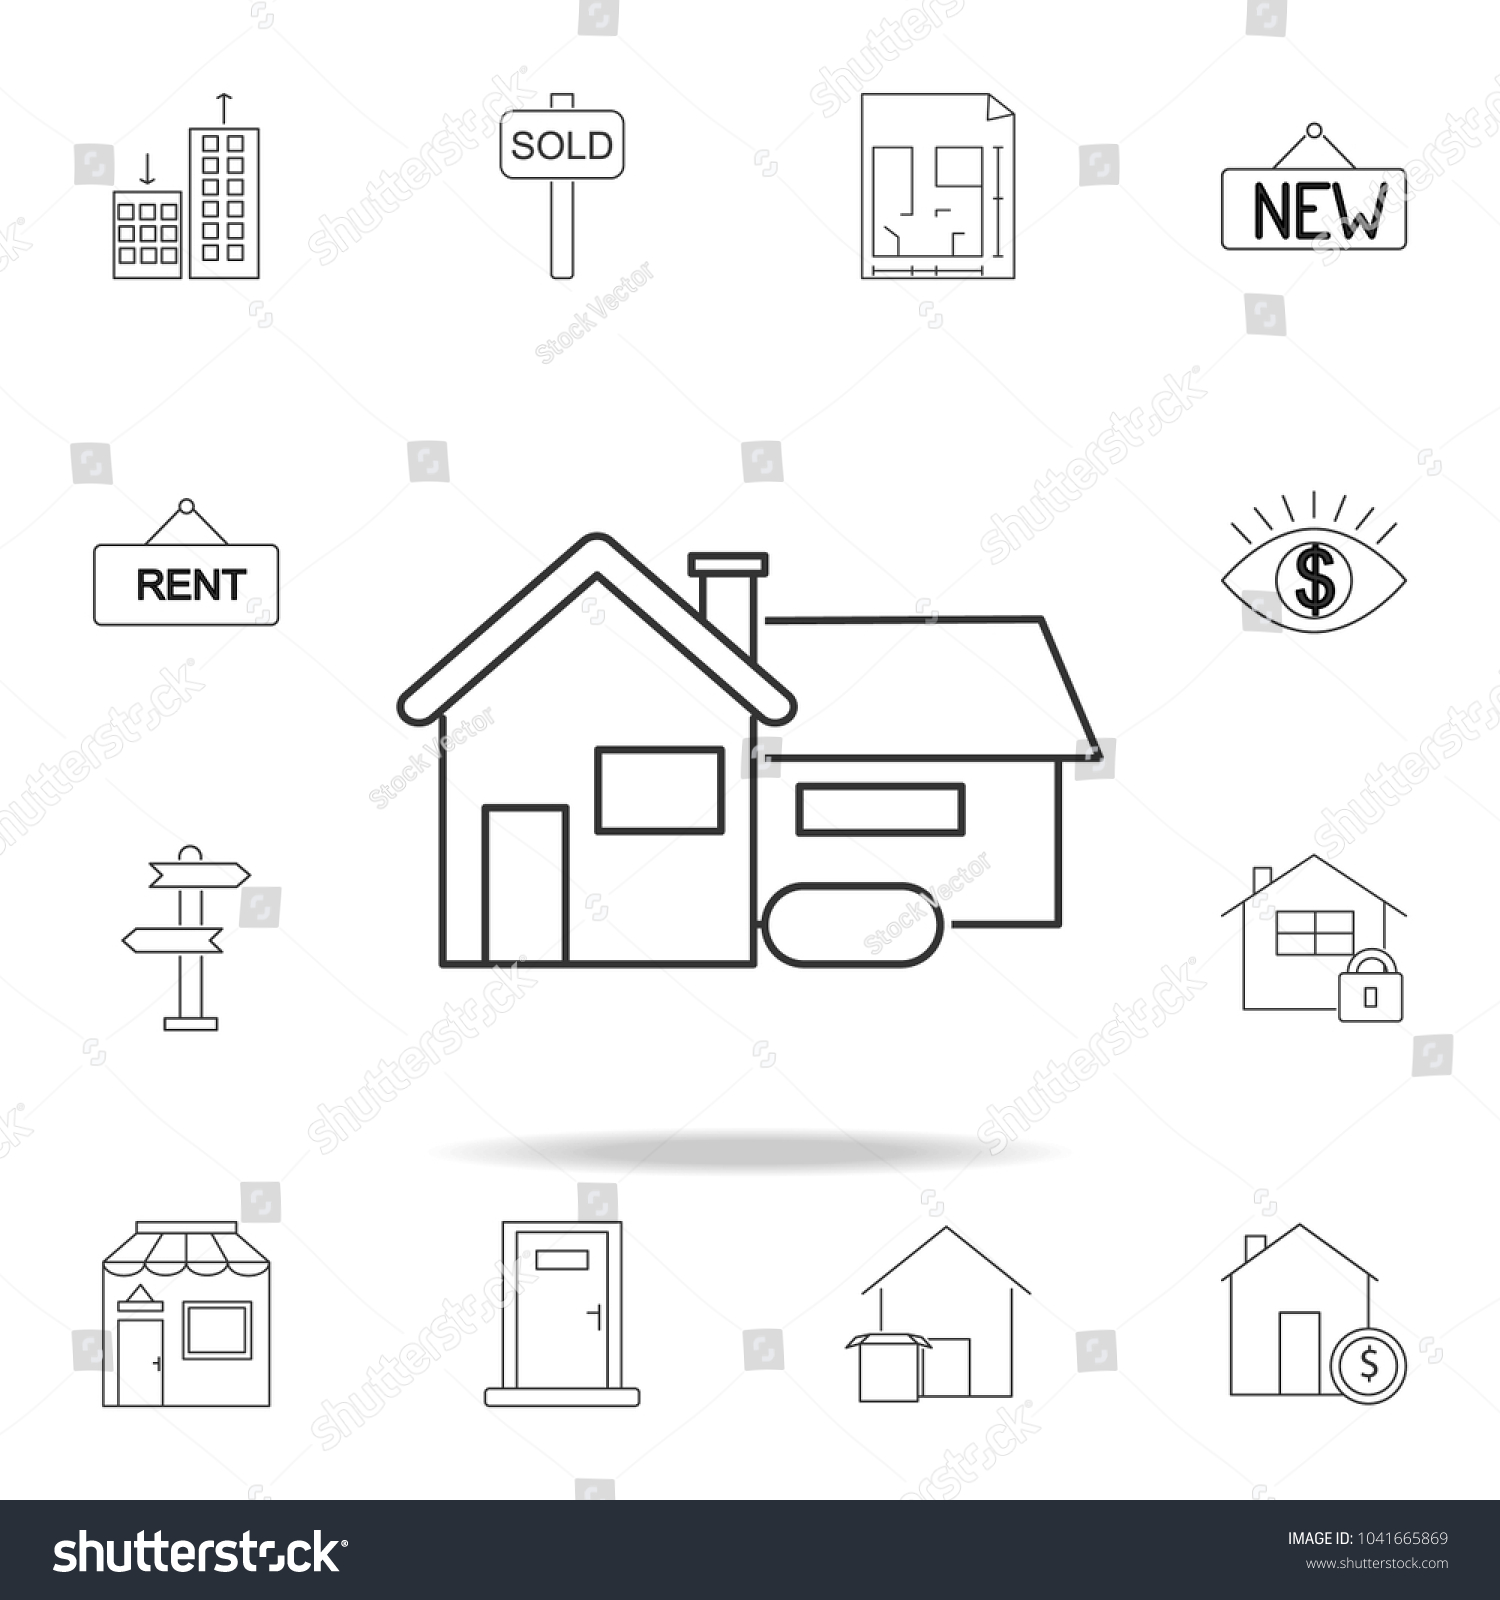 House Icon Set Sale Real Estate Stock Vector 1041665869 Shutterstock